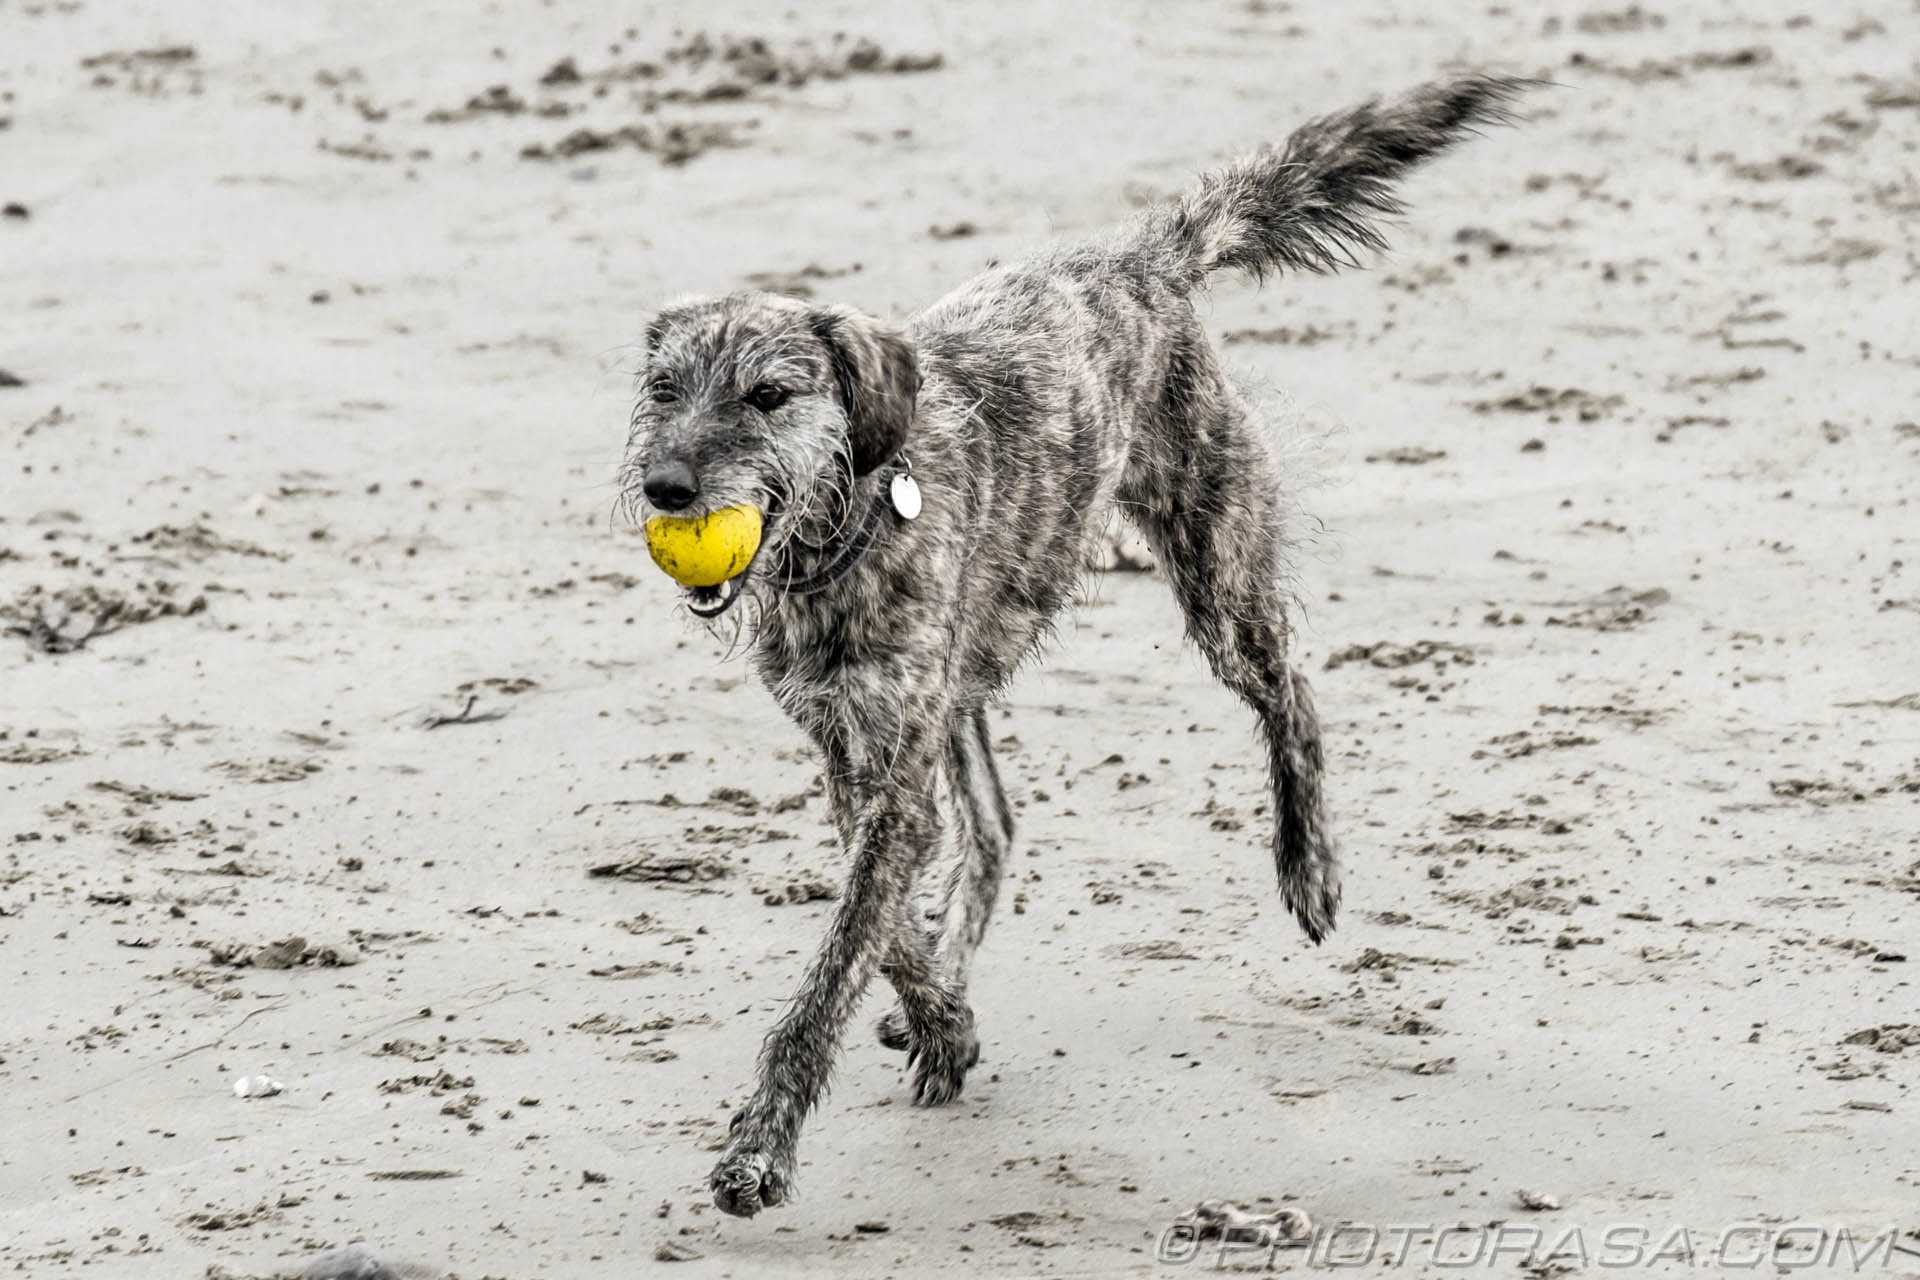 http://photorasa.com/dog-sand/running-on-sand-with-yellow-ball-in-mouth/